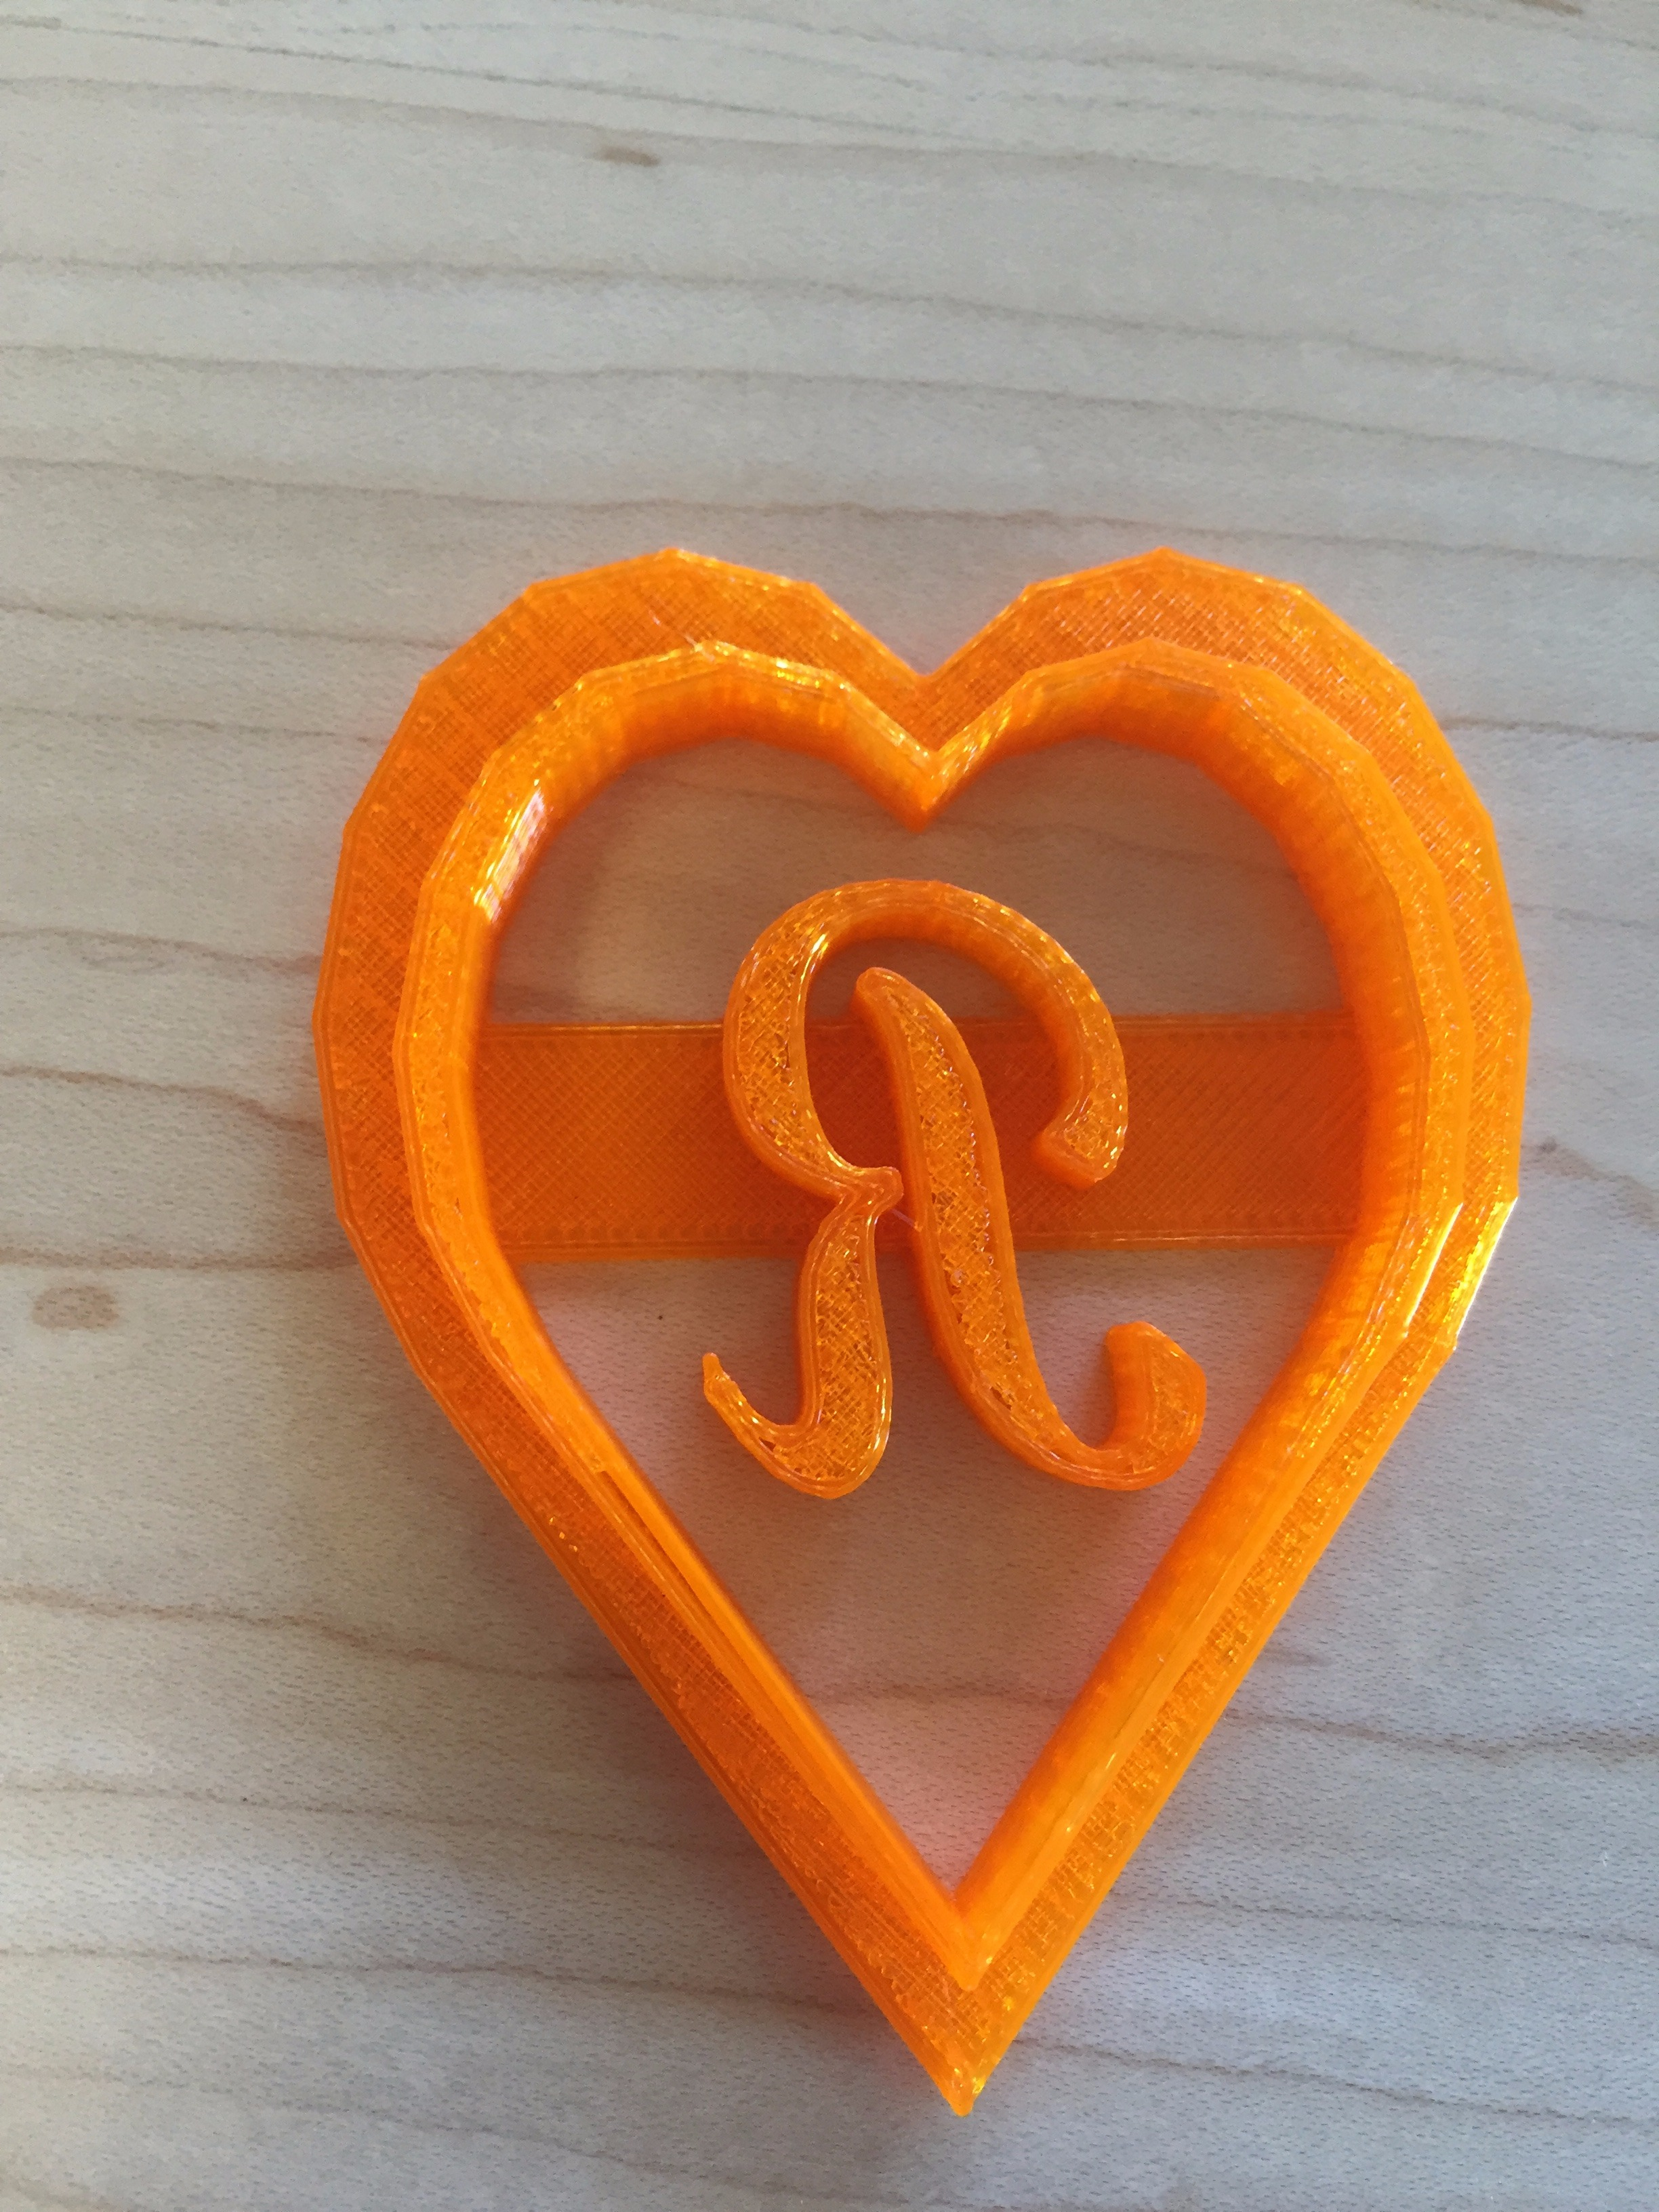 Picture of Design and 3D Print a Cookie Cutter